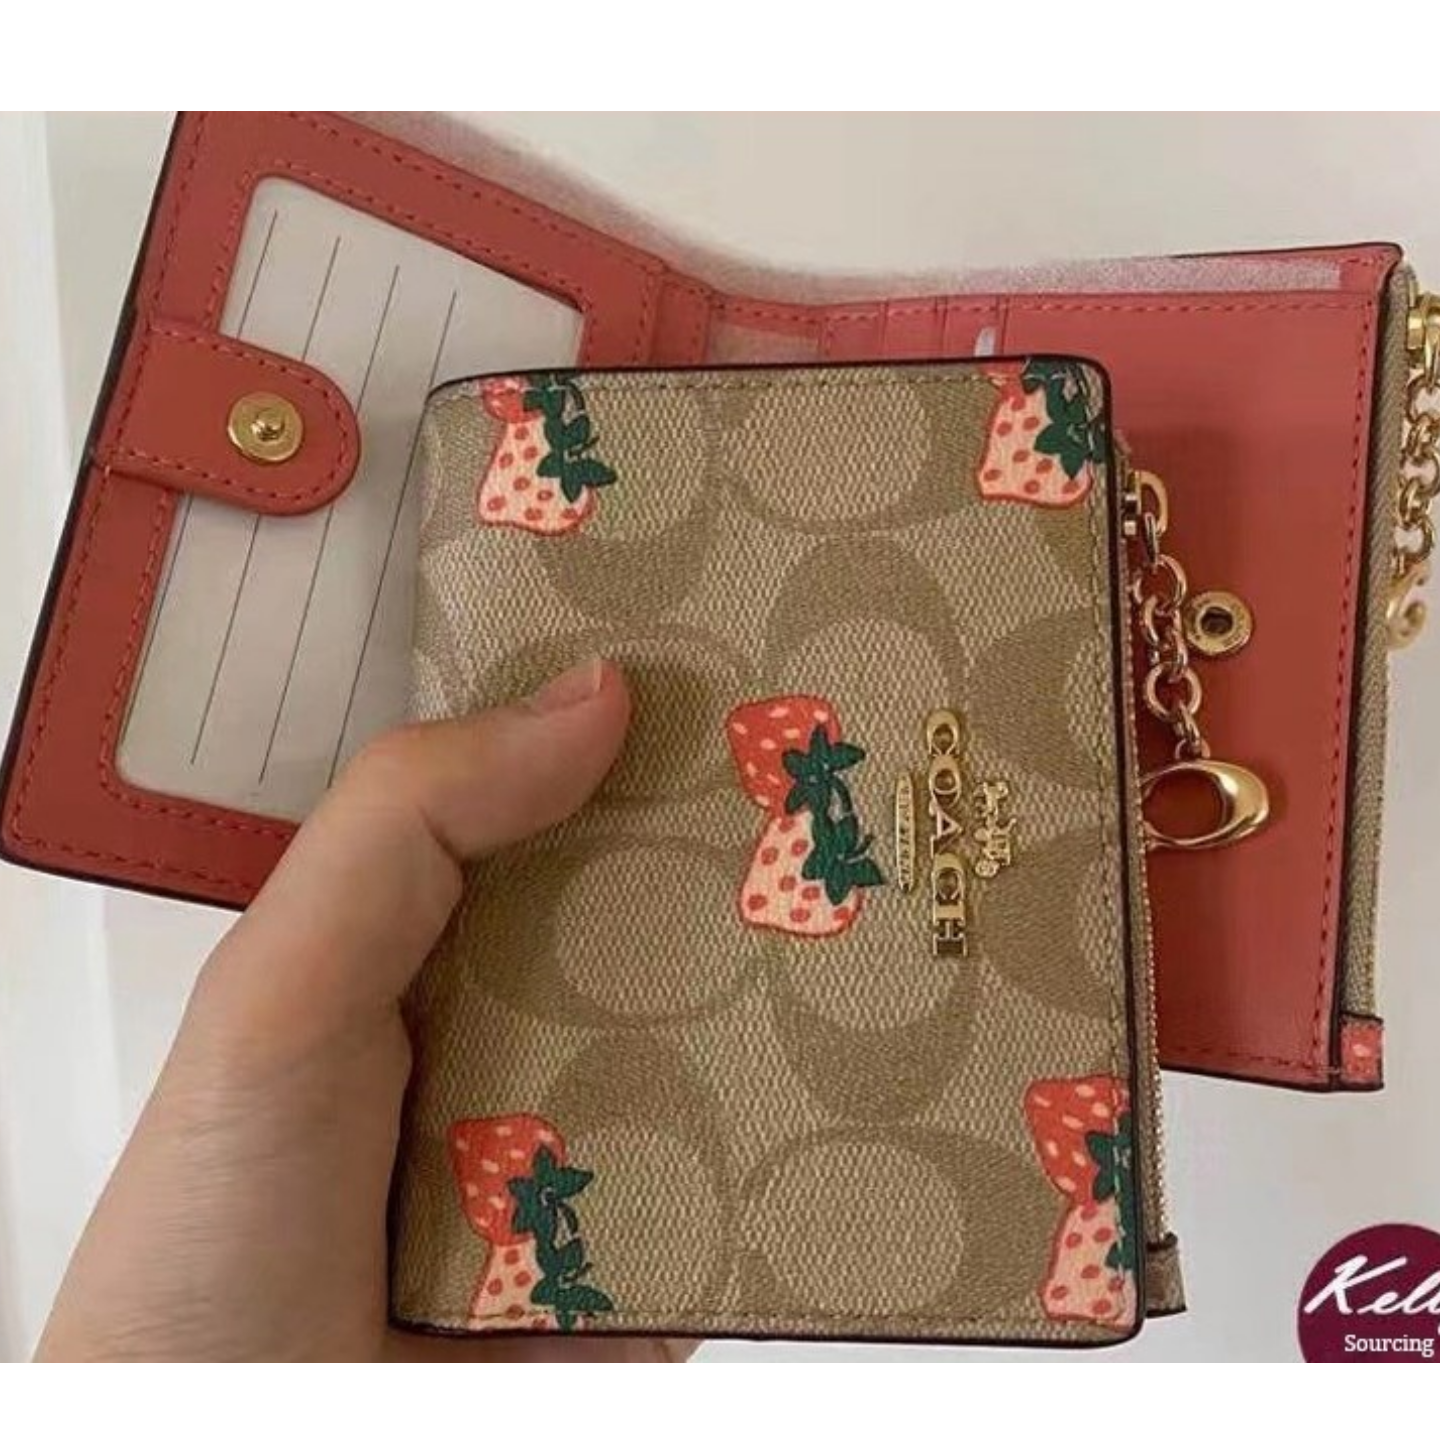 (SG COD)  Ladies Coach wallet F91156 cardholder card holder key card holder